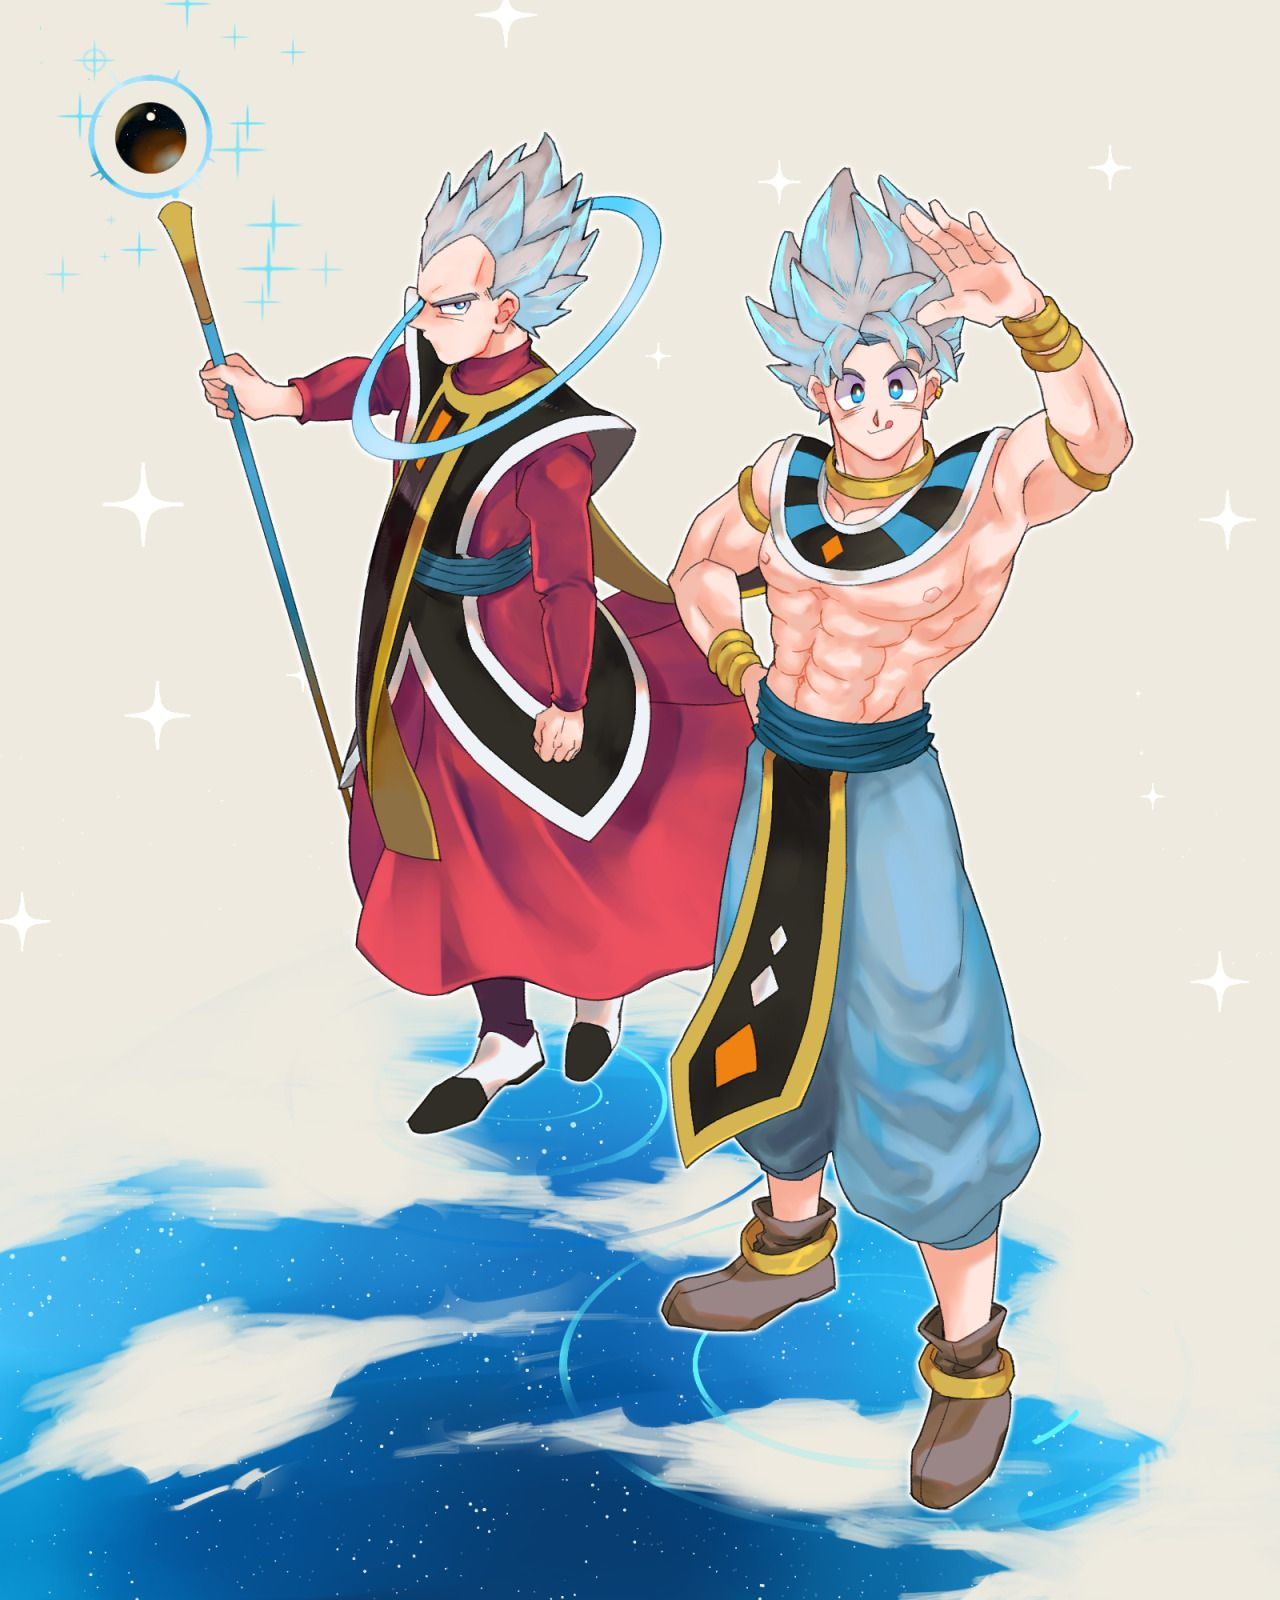 Vegeta And Goku Dressed As Whis And Beerus Dragon Ball Z